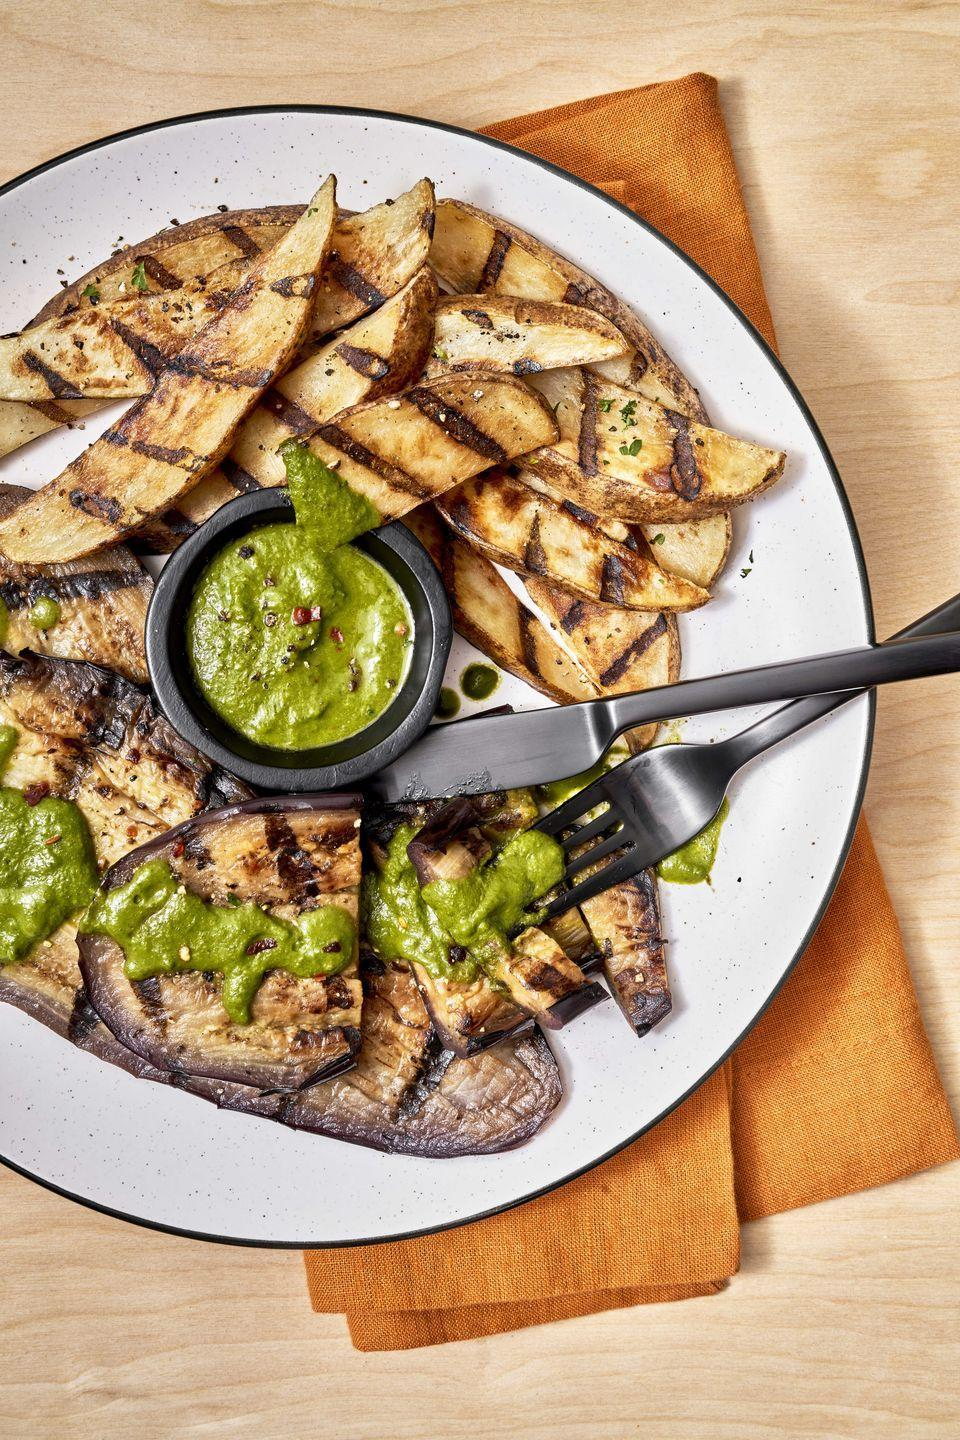 """<p>An Argentine herb sauce, chimichurri, transform eggplants and potatoes from vegetable sides to a complete, fancy dinner.</p><p>Get the recipe from <a href=""""https://www.delish.com/cooking/recipe-ideas/a36973006/eggplant-steak-with-chimichurri/"""" rel=""""nofollow noopener"""" target=""""_blank"""" data-ylk=""""slk:Delish"""" class=""""link rapid-noclick-resp"""">Delish</a>.</p>"""